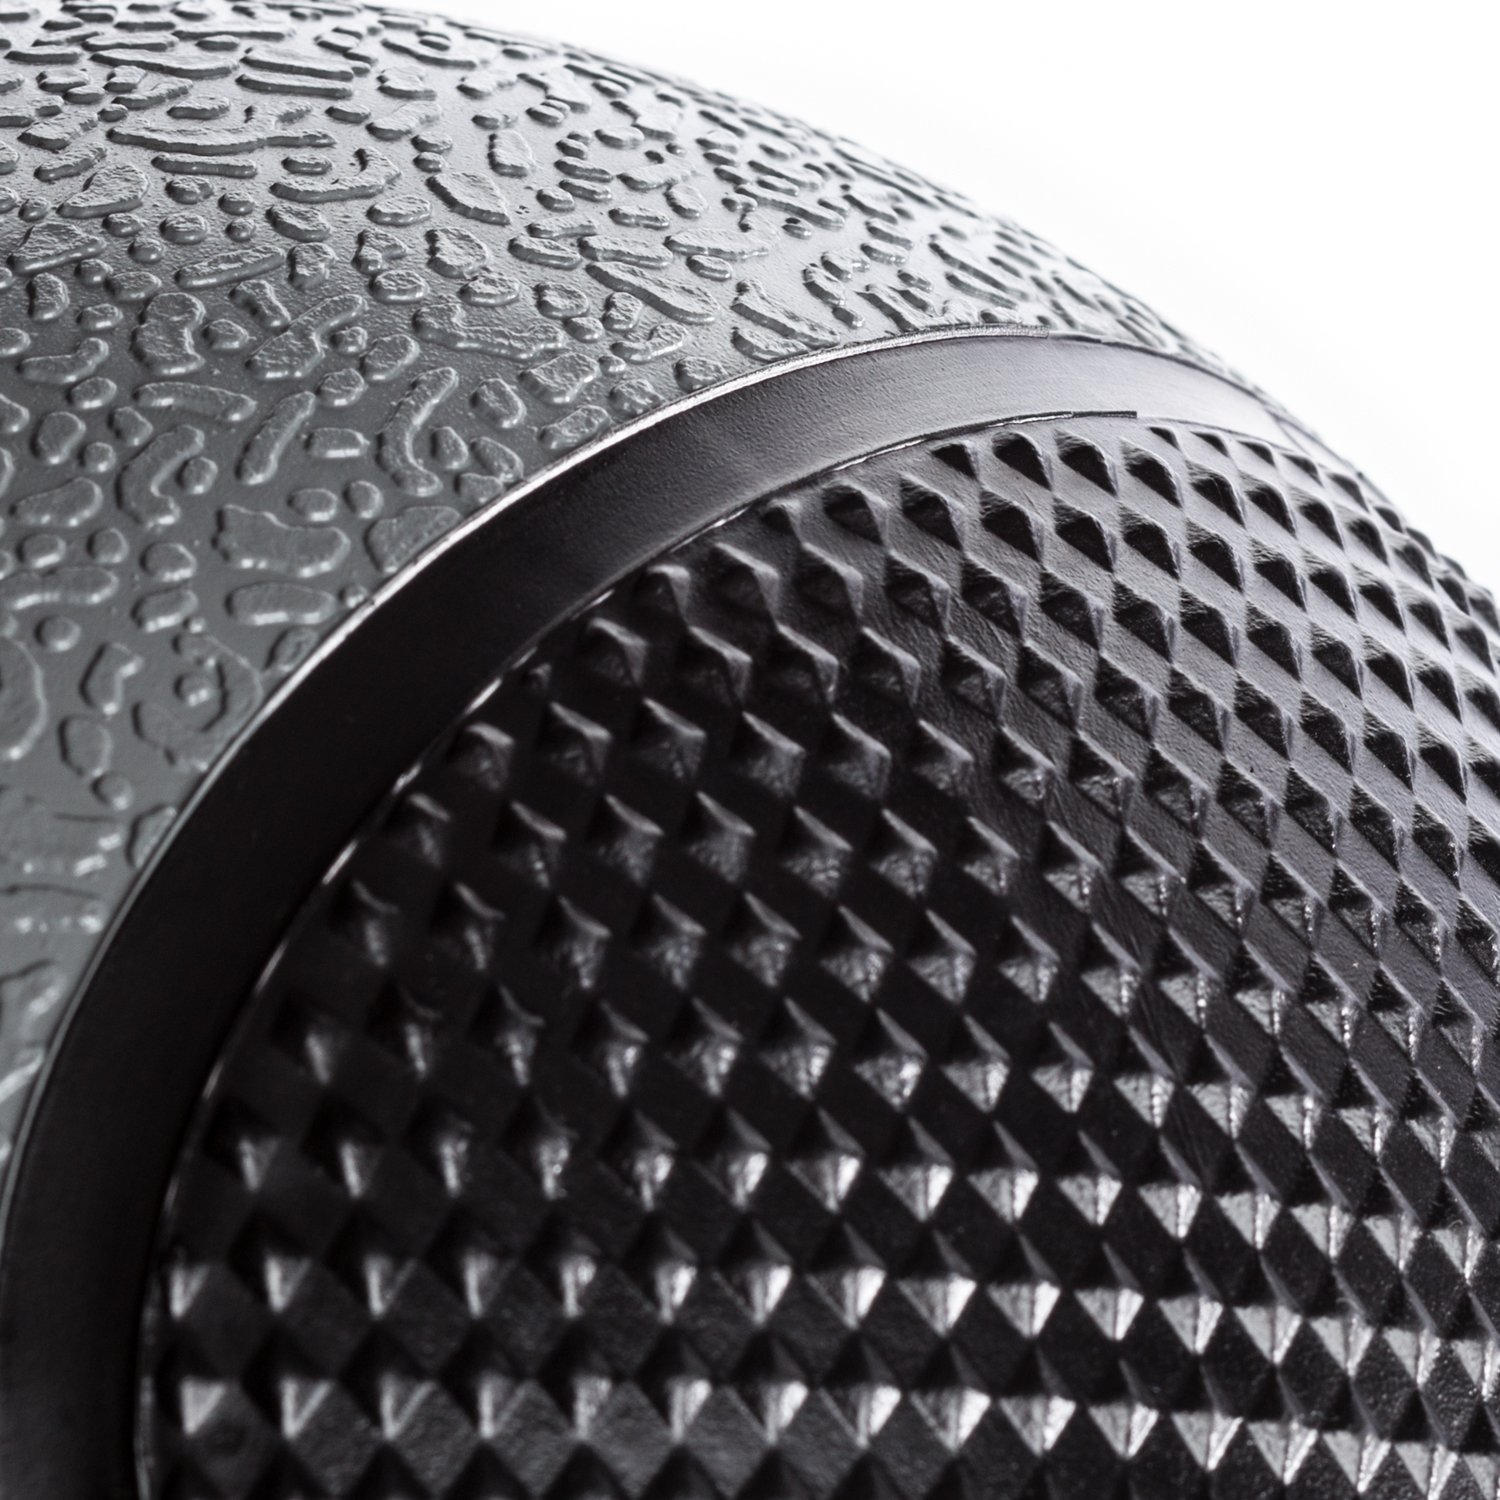 DYNAPRO Medicine Ball   Exercise Ball, Durable Rubber, Consistent Weight Distribution, Comfort Textured Grip for Strength Training (Gray- 12LB) by DYNAPRO (Image #3)